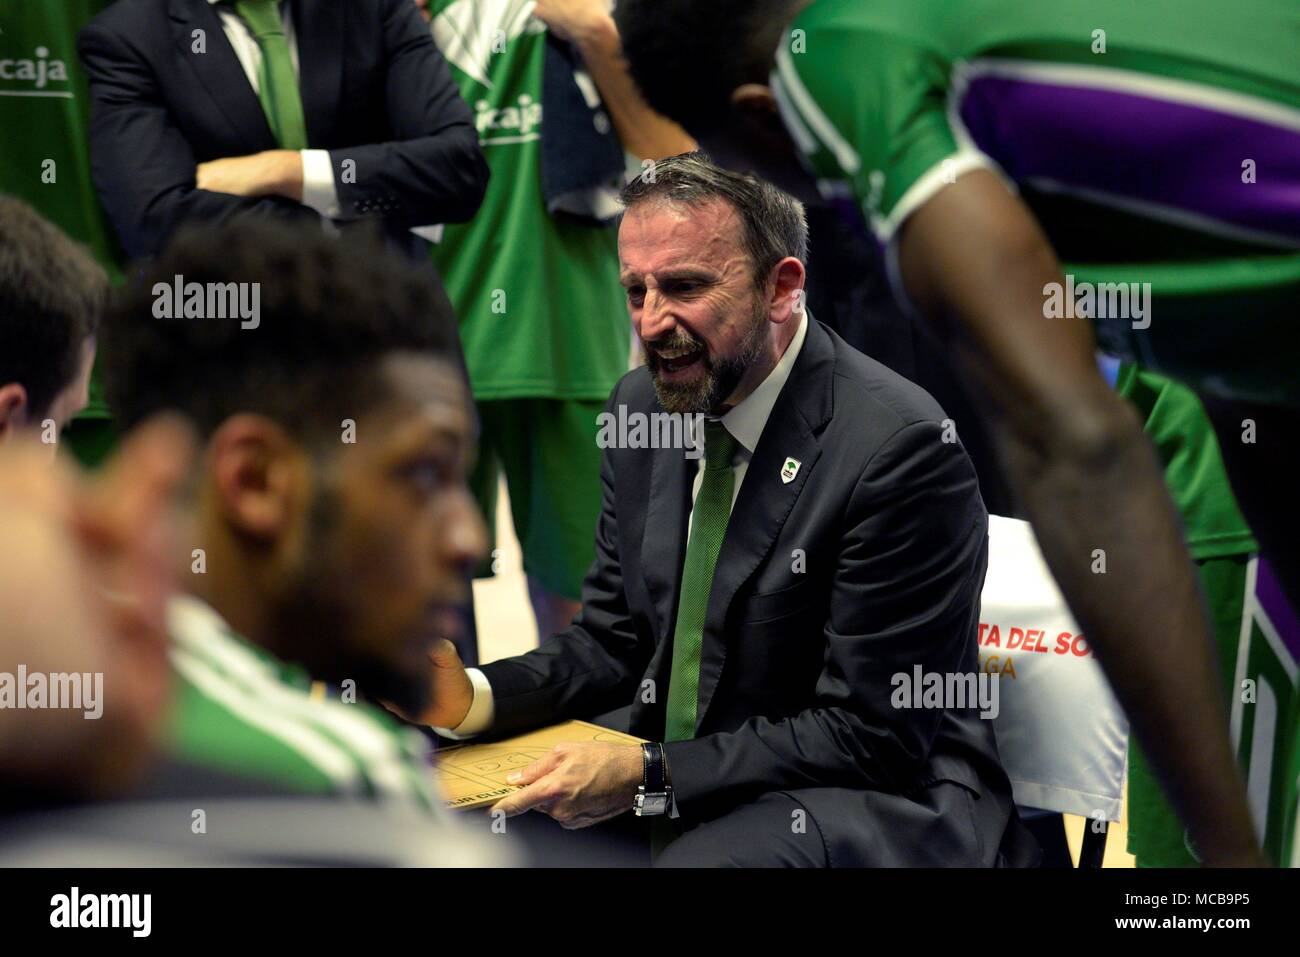 Malaga, Spain. 15th Apr, 2018. Unicaja's head coach Joan Plaza speaks with the players during a match between Unicaja Málaga and FC Barcelona Lassa of the Endesa League, at the Palacio de los Deportes José María Martín Carpena, in Malaga, Spain, on 15 April 2018. EFE/Juan Miguel Pérez Ramos Credit: EFE News Agency/Alamy Live News Stock Photo